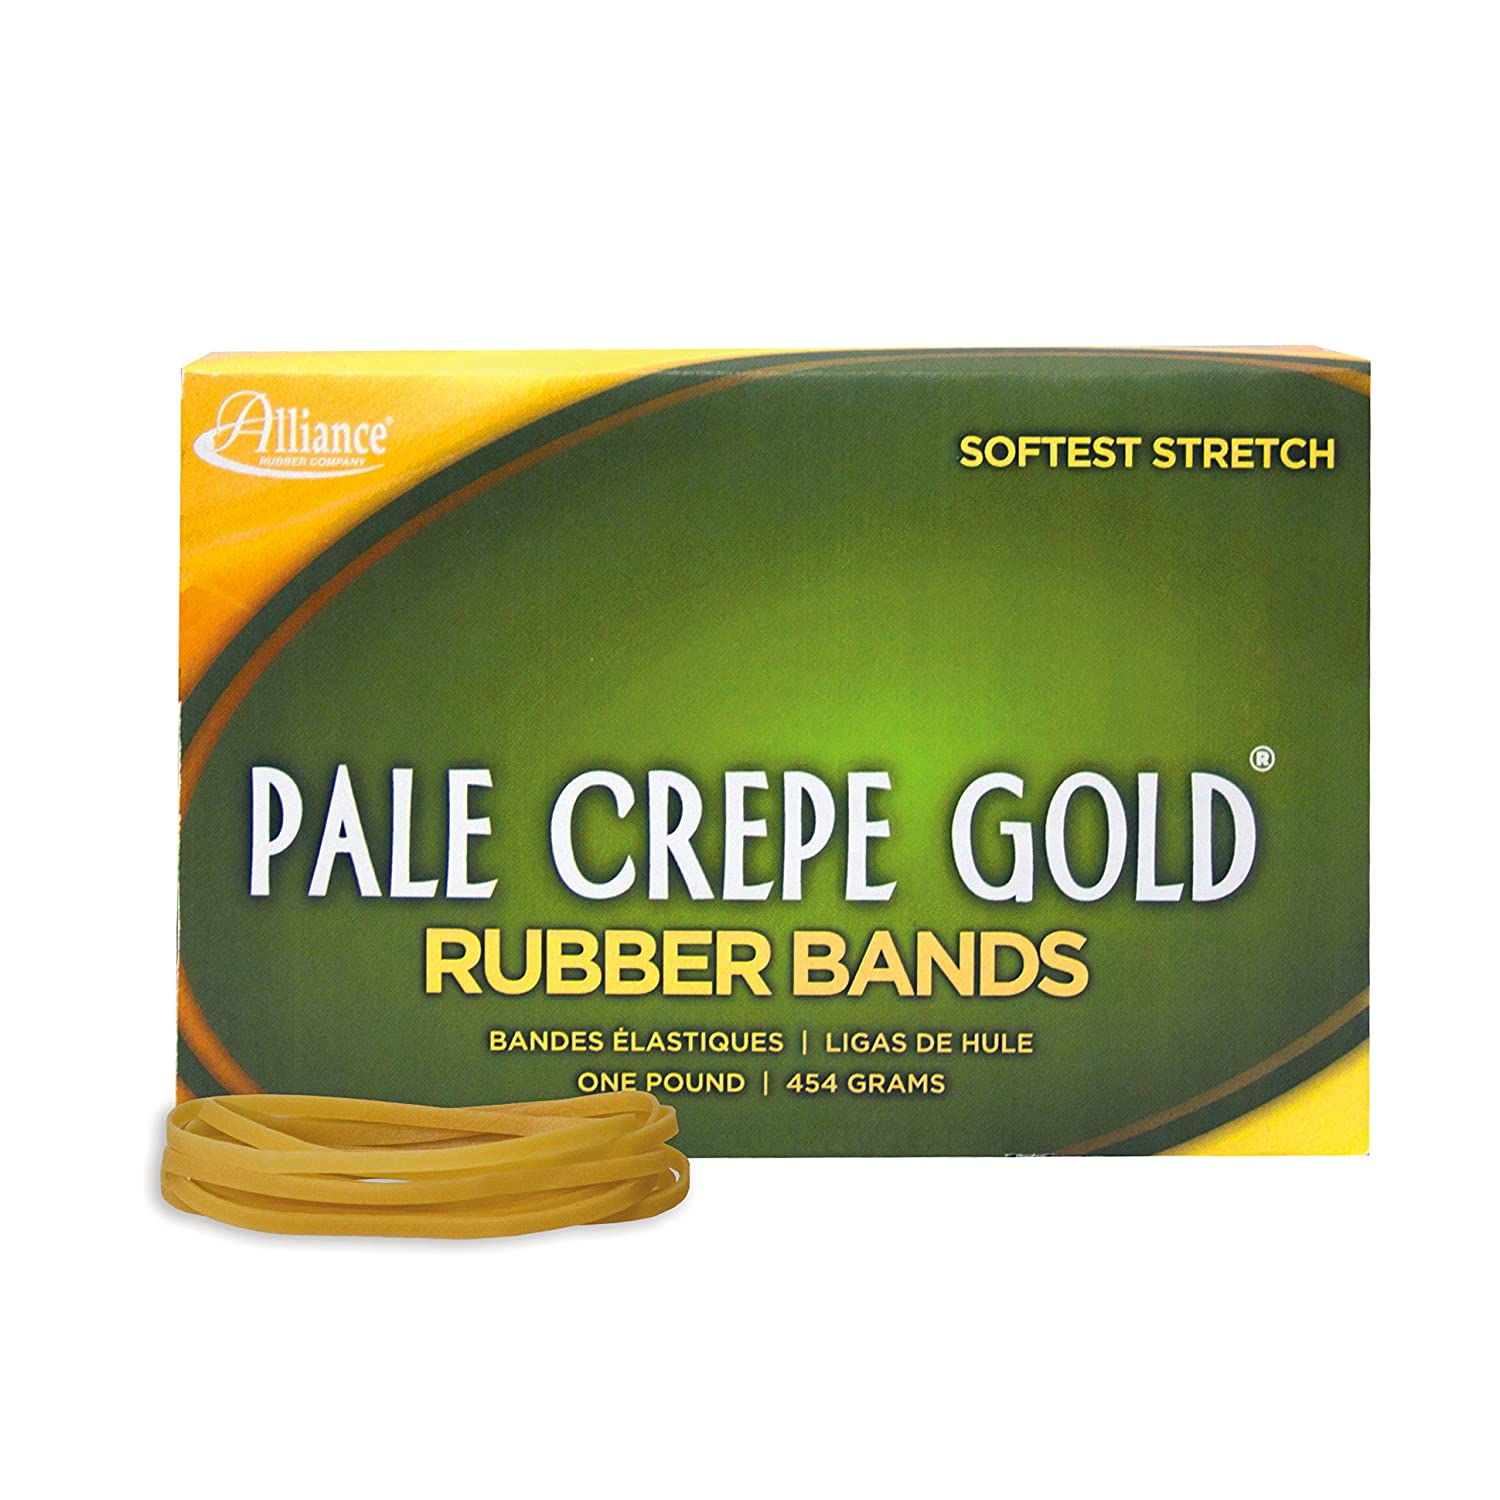 320 Bands 1 lb Box Contains Approx Alliance Rubber 20745 Pale Crepe Gold Rubber Bands Size #74 3 1//2 x 3//8, Golden Crepe